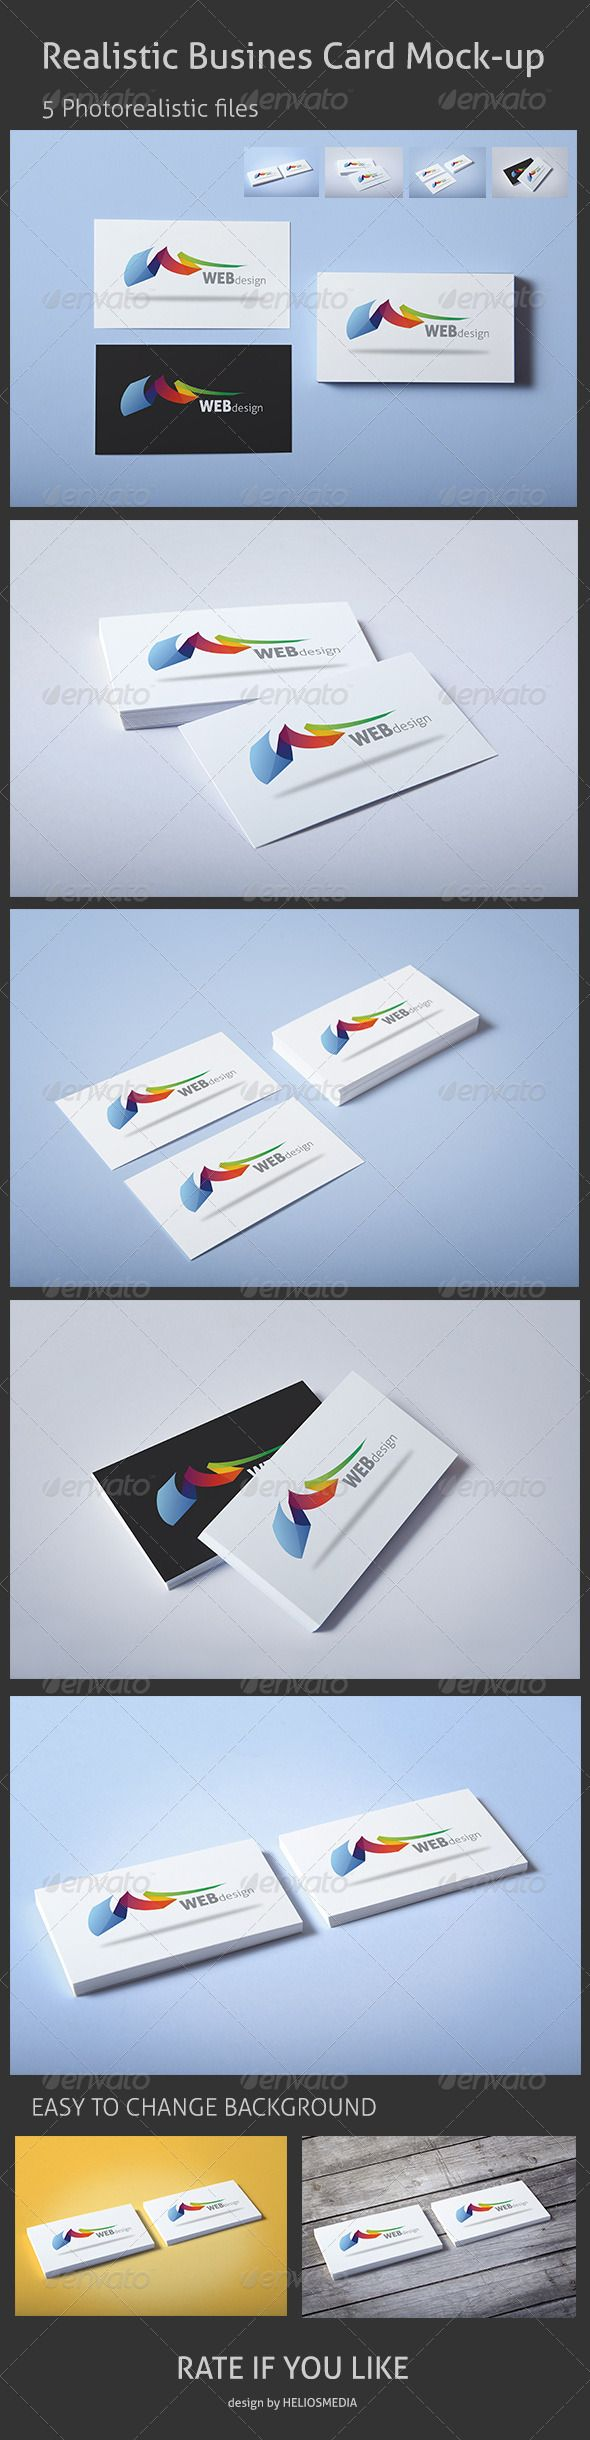 717 best business card mockup images on pinterest fonts realistic business card mock up magicingreecefo Gallery